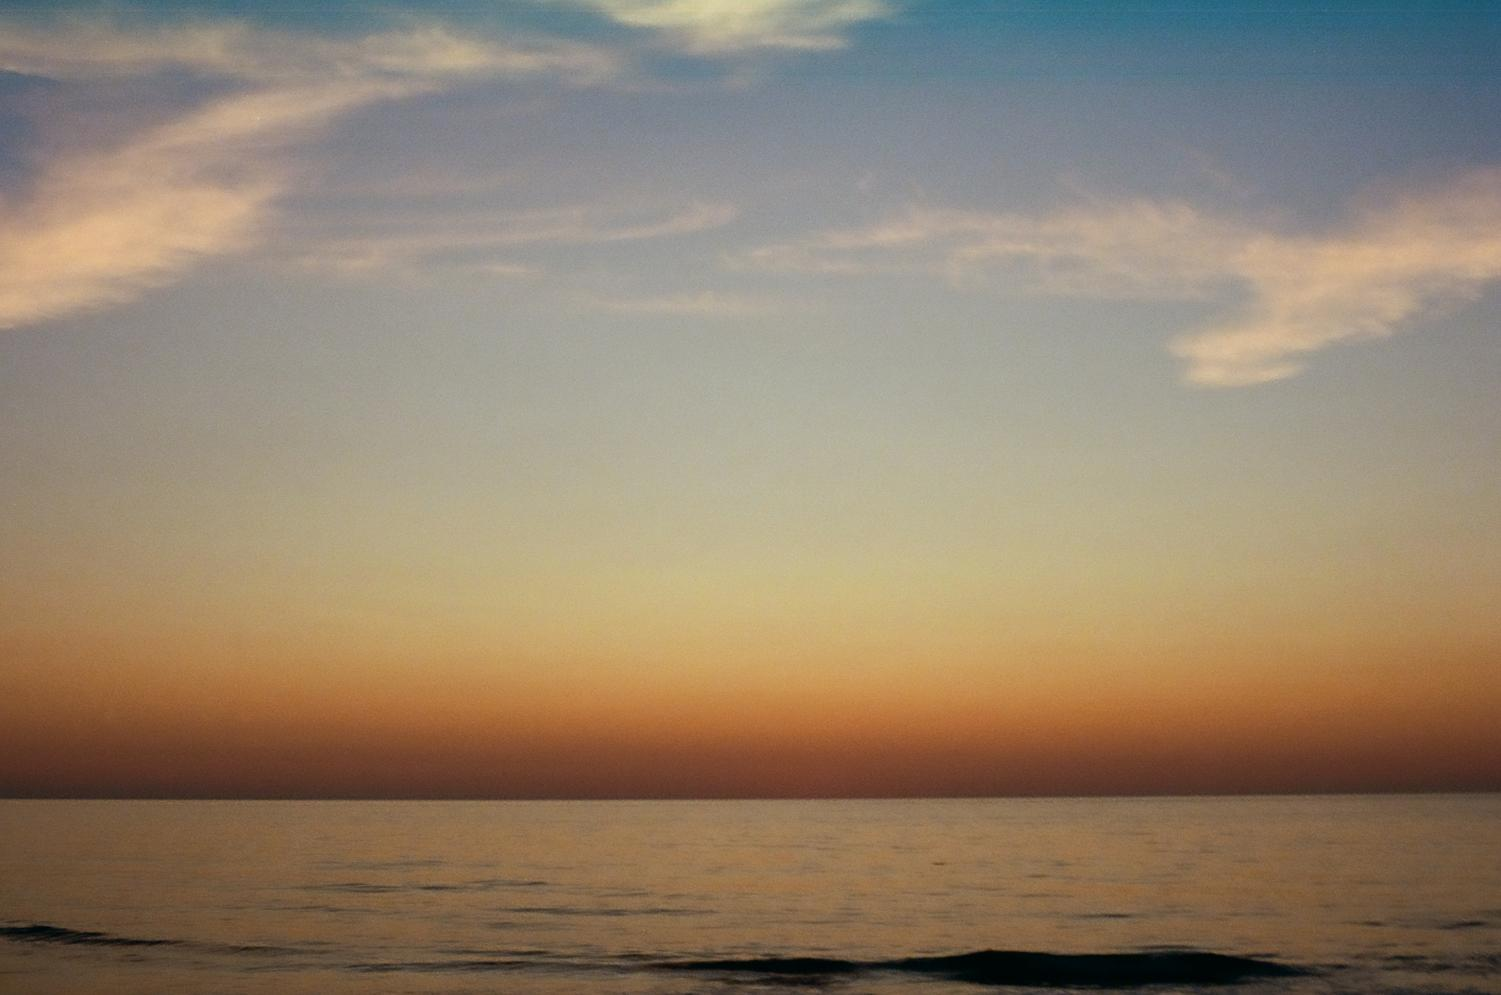 Calming images- much like this one- can help settle the mind and lessen overwhelming thoughts.